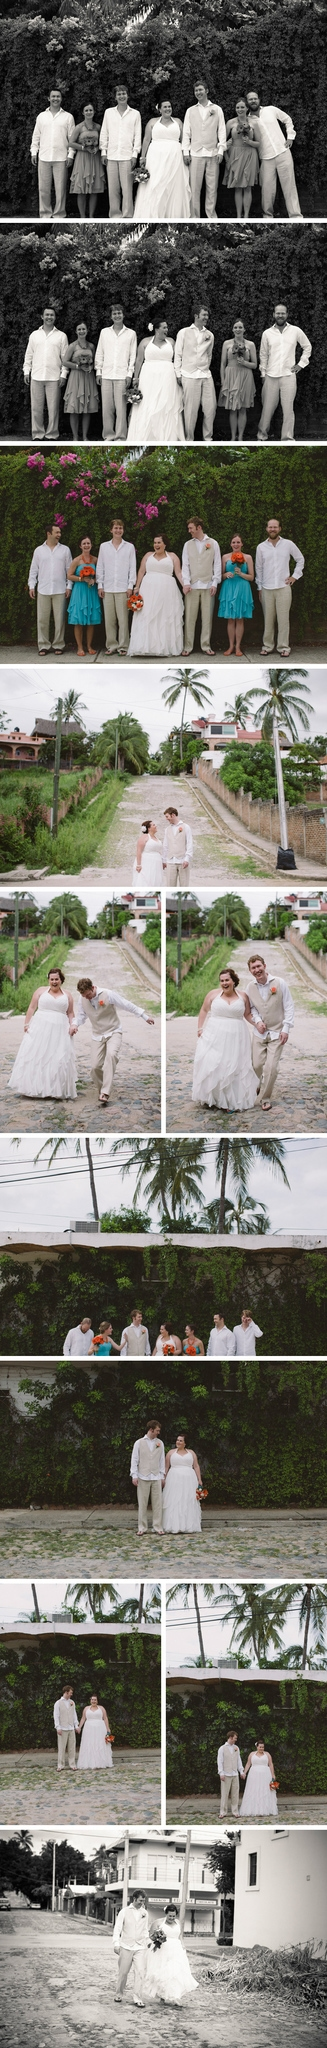 Mara and Niel's Mexican Wedding - Thorson Photography